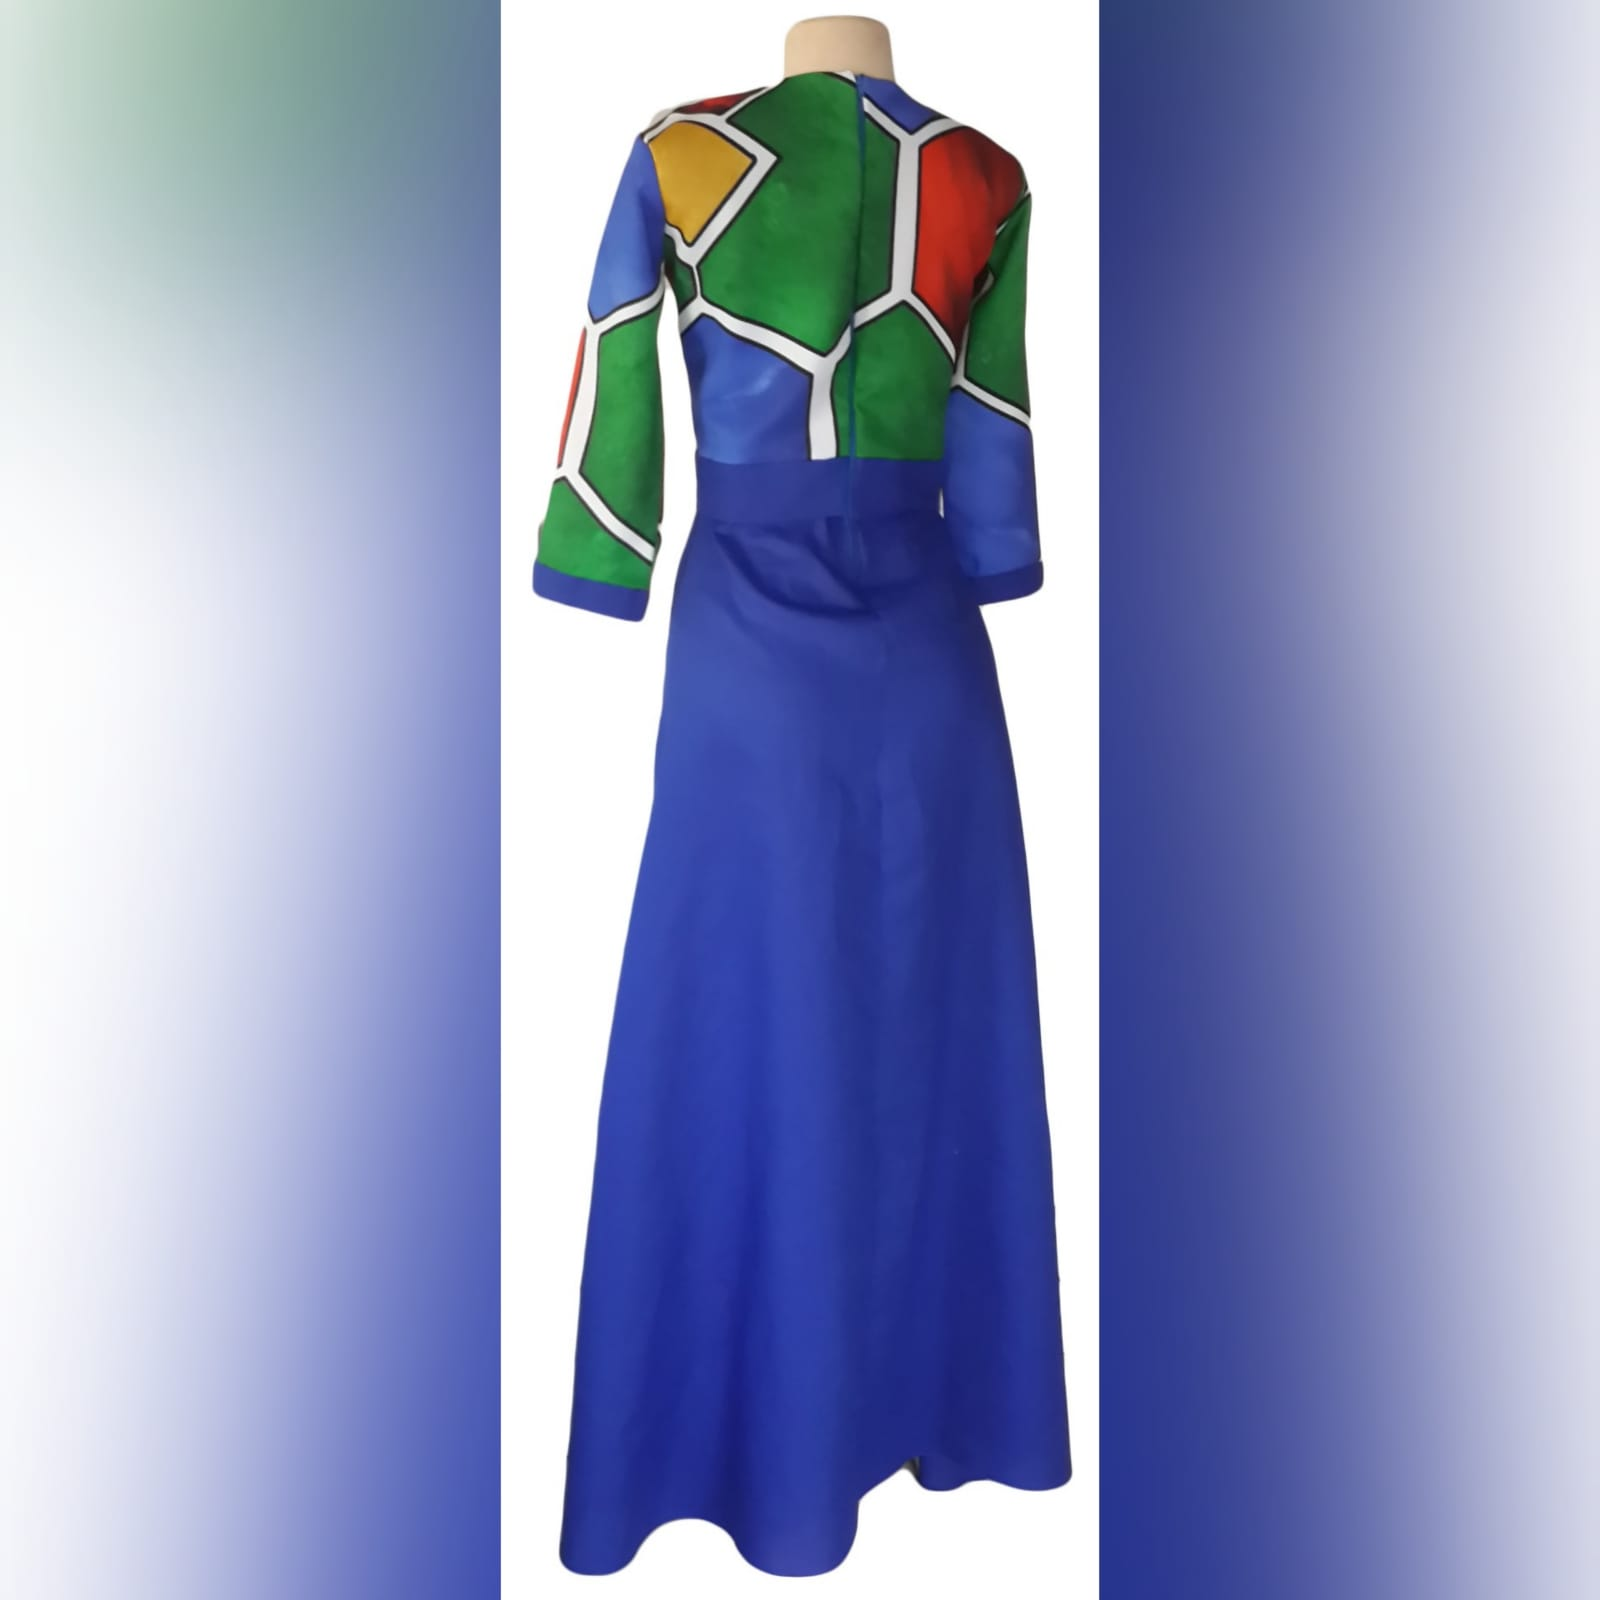 Royal blue ndebele dress and matching ndebele shirt 6 royal blue and ndebele empire fit dress. Bodice with ndebele print and 3/4 sleeves and an under bust belt. Mens matching ndebele shirt in royal blue. Traditional wedding attire.